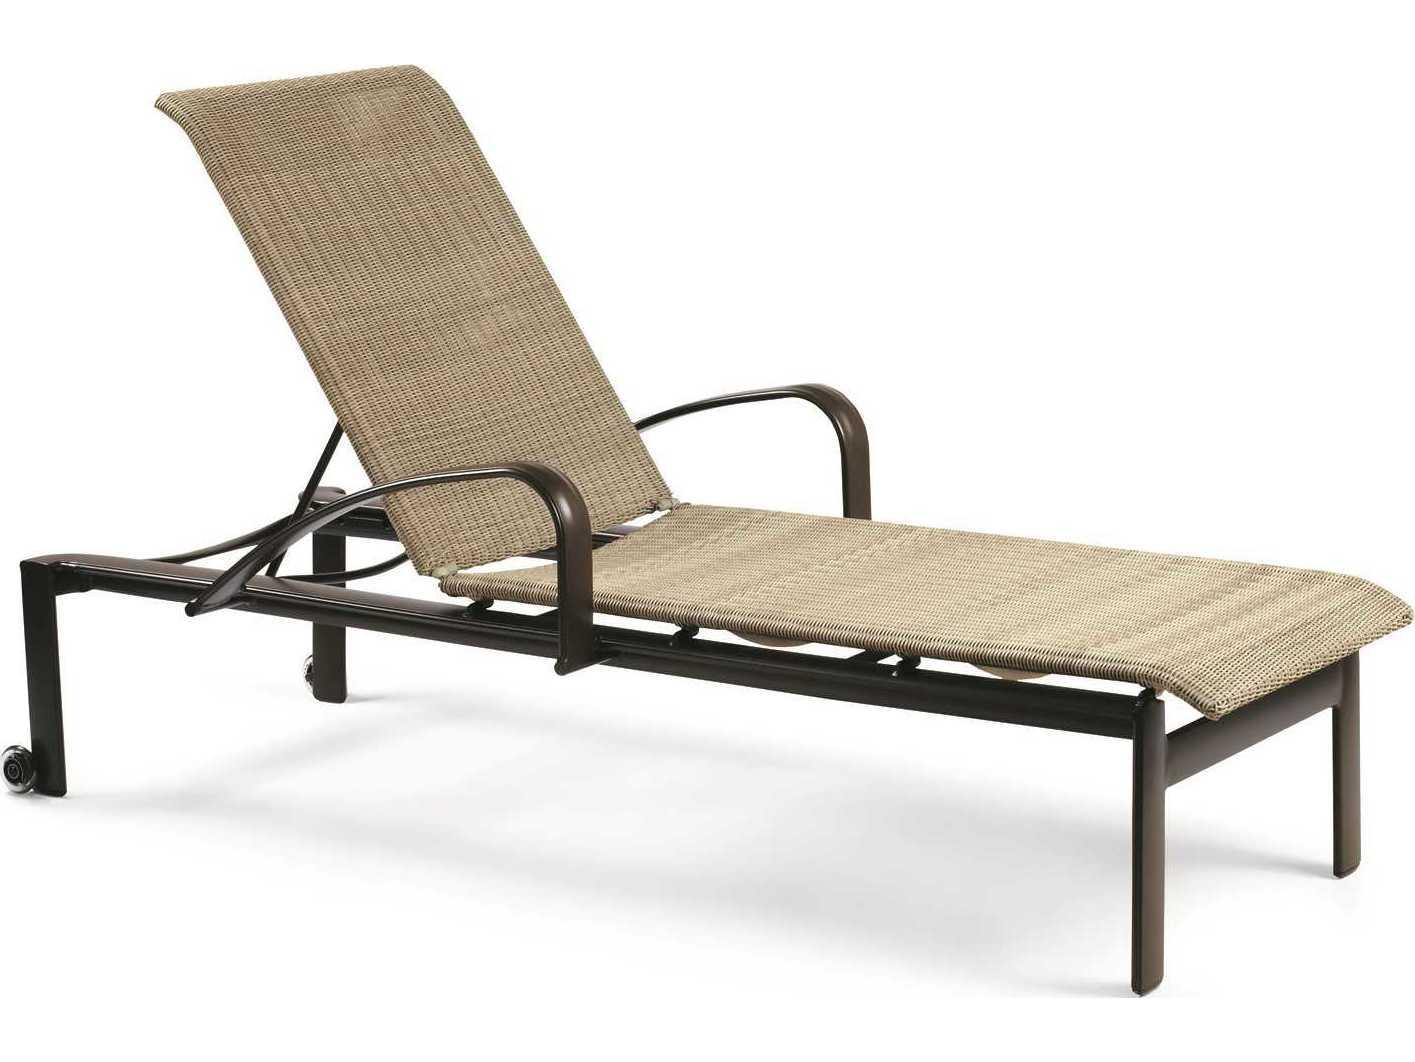 Winston belvedere woven aluminum stackable chaise lounge for Aluminum chaise lounge with wheels